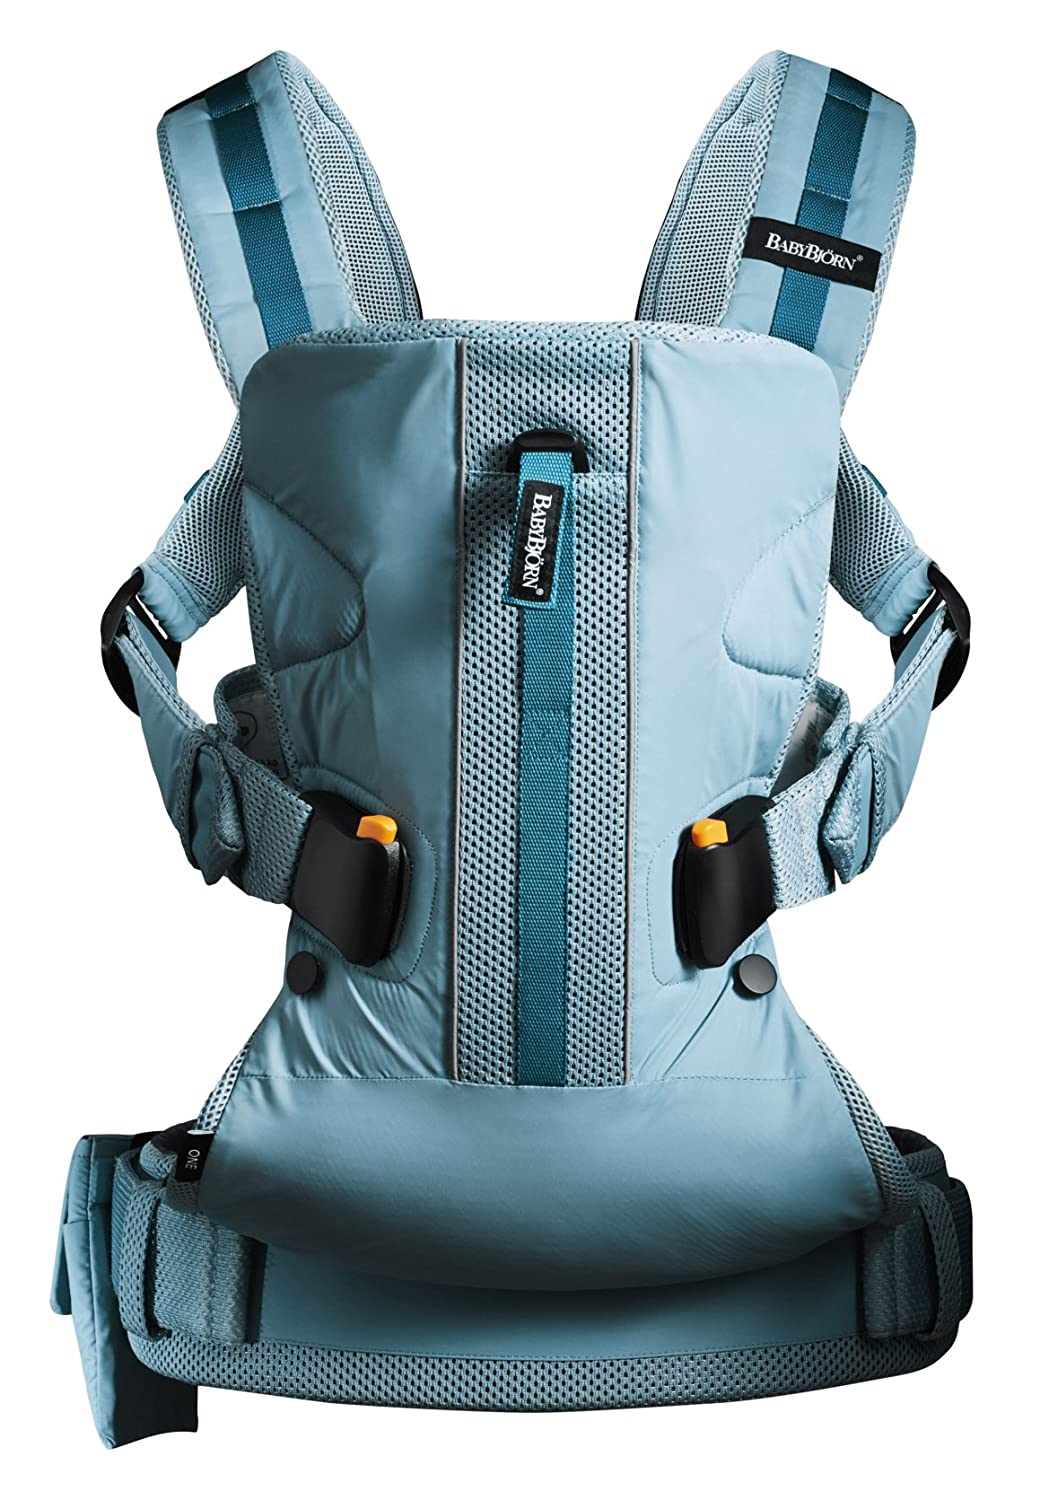 b9c15638272 BABYBJORN Baby Carrier One Outdoors - Turquoise  Amazon.ca  Baby